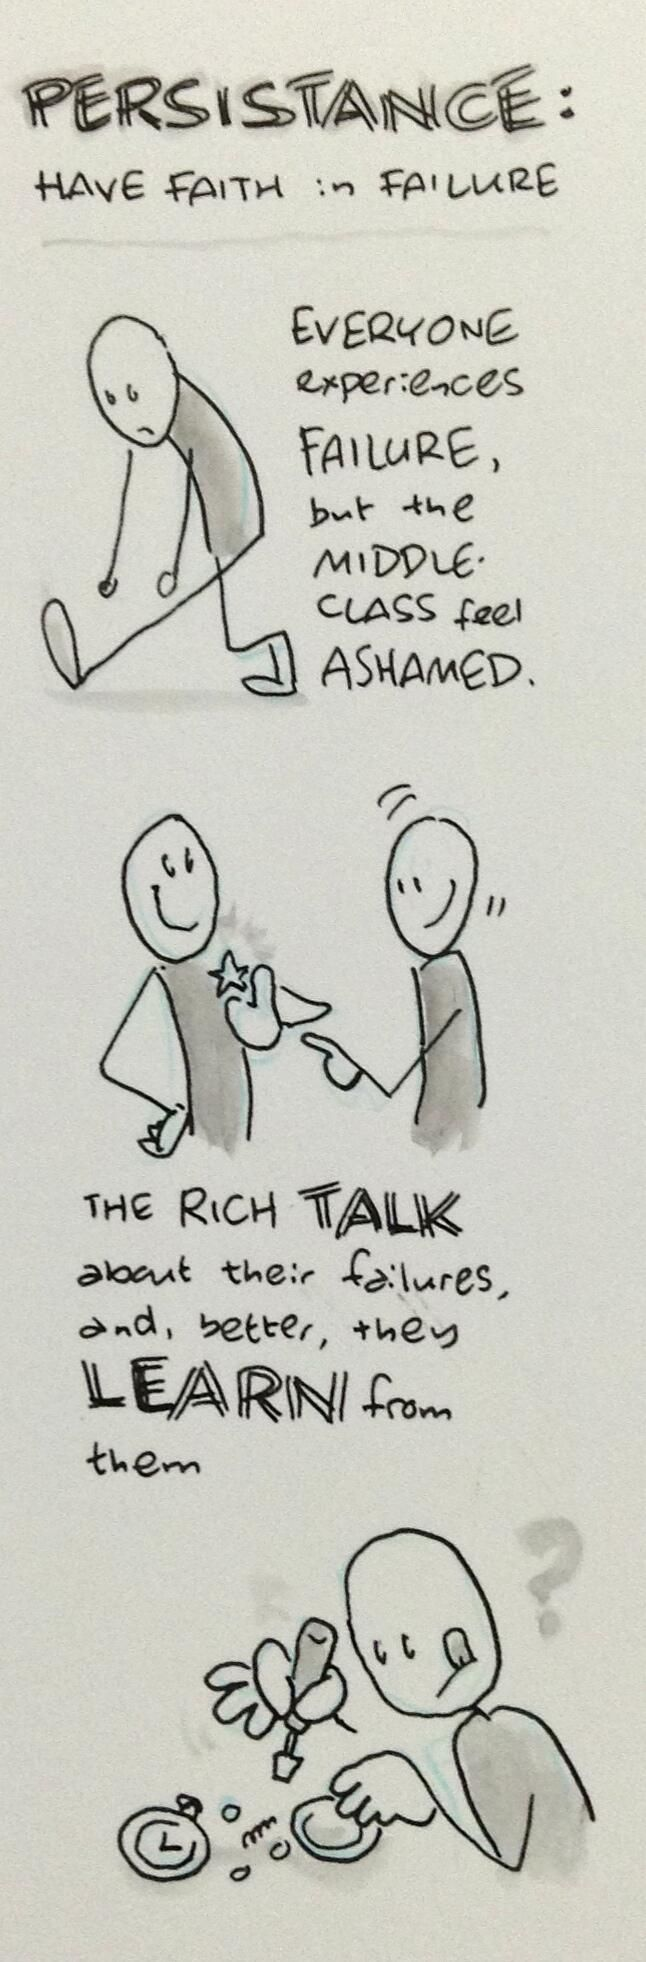 Twitter / hamishmacdonald: Pride in failure is a quality ...